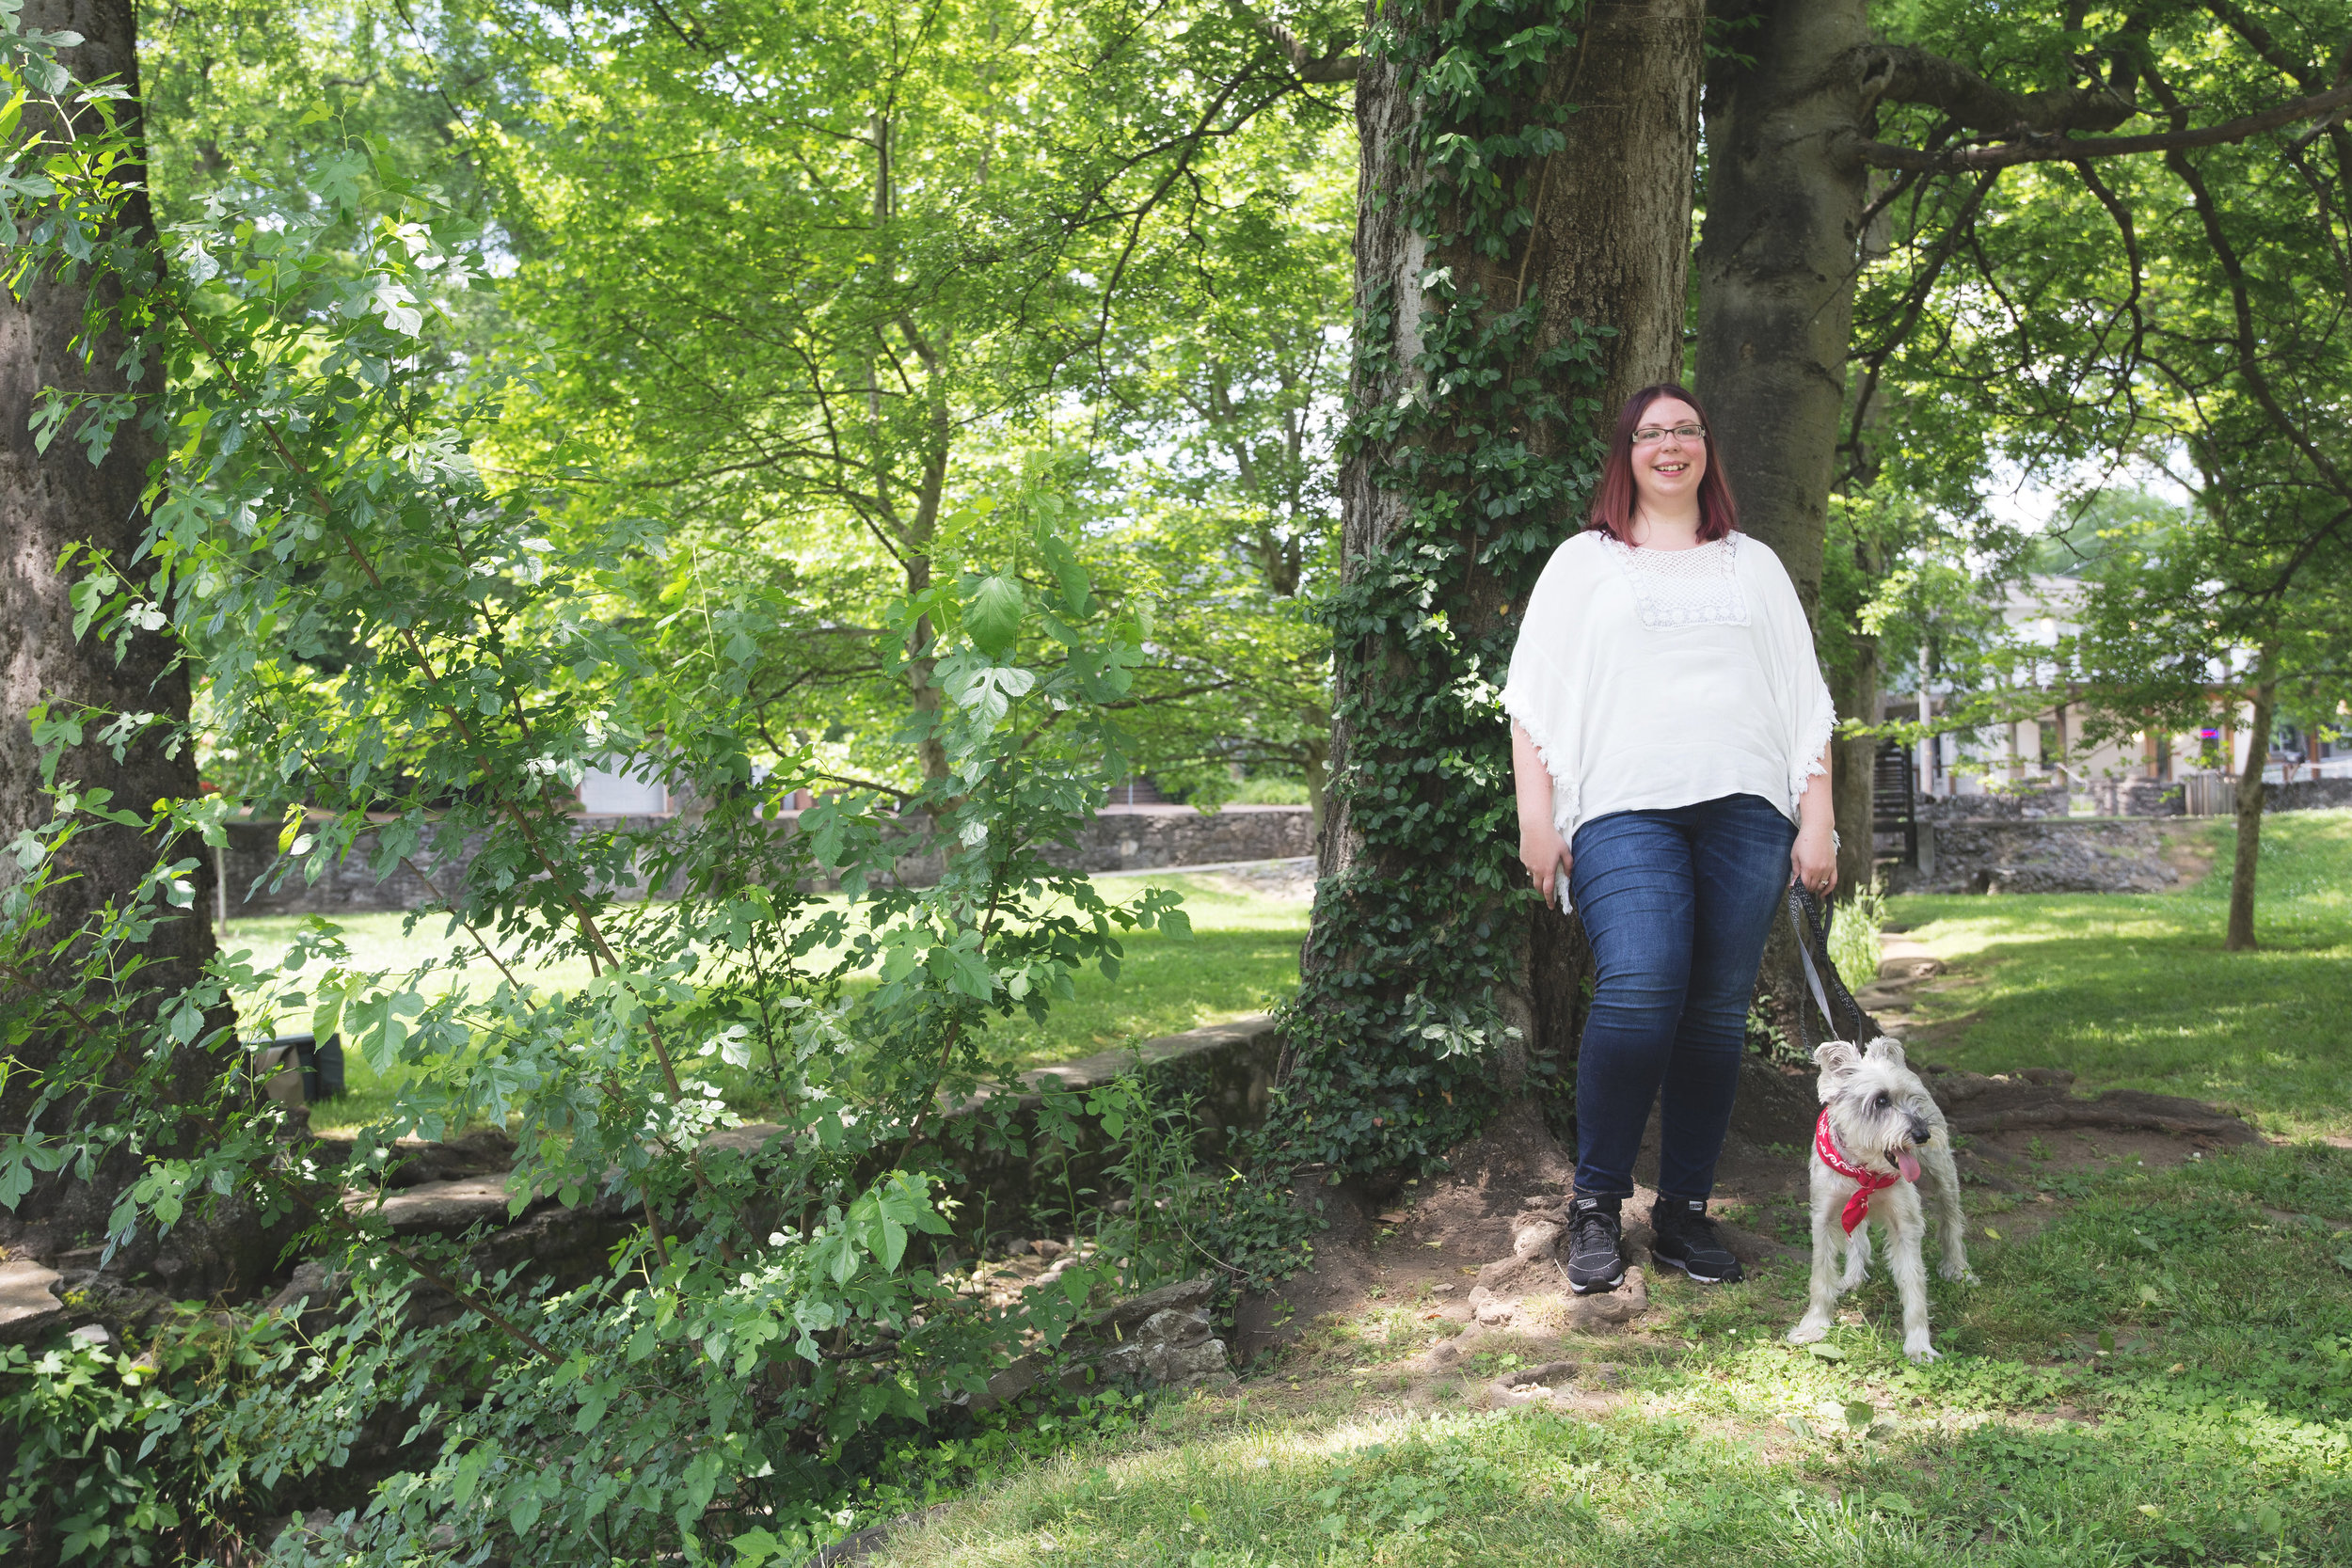 My Mission - It is one of my strongest desires to help frustrated dog owners ease that frustration so more dogs can stay in their forever home.